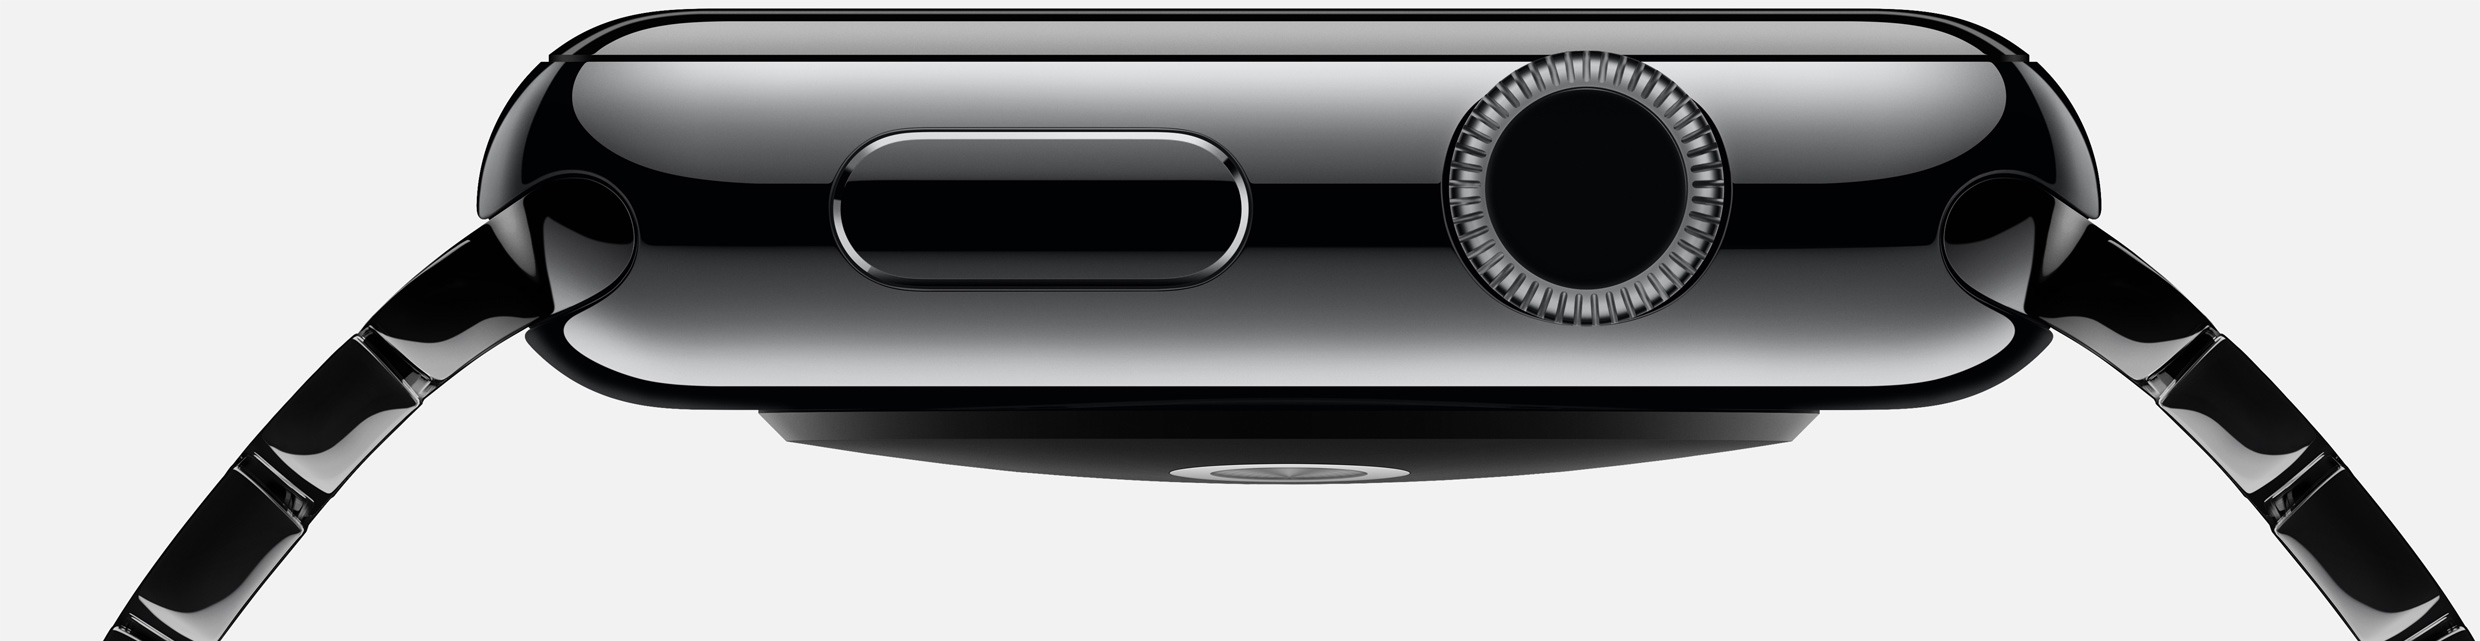 Official-Apple-Watch-images (16)